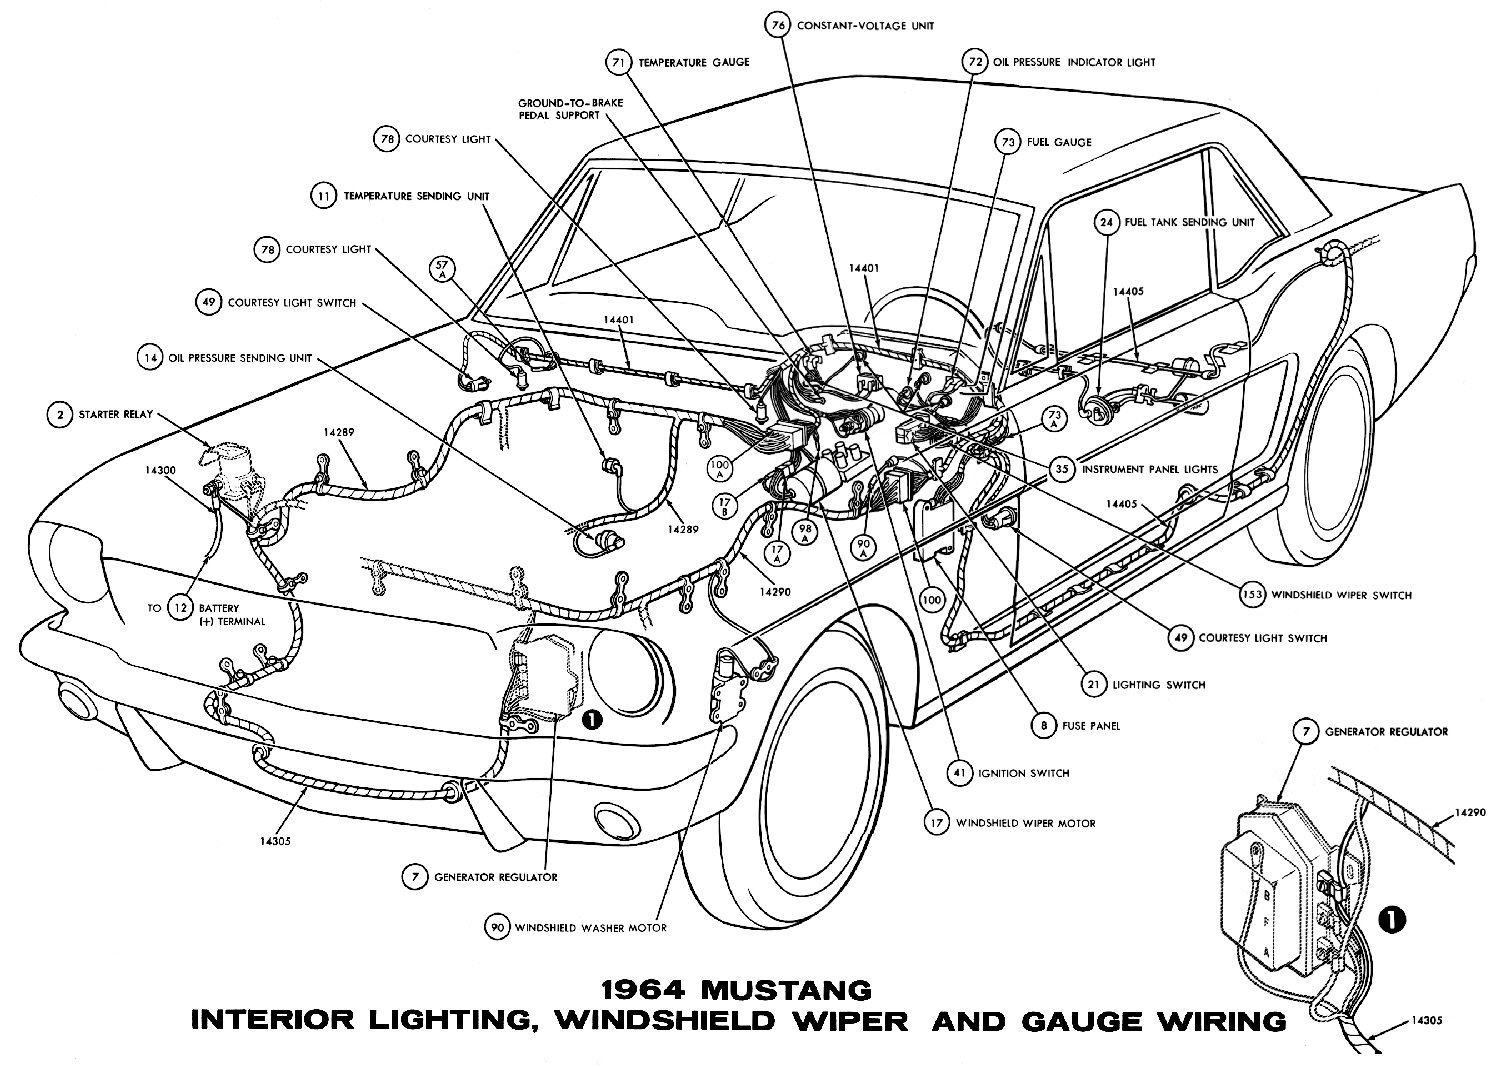 1964½ mustang interior lightning winshield wiper and gauge wiring